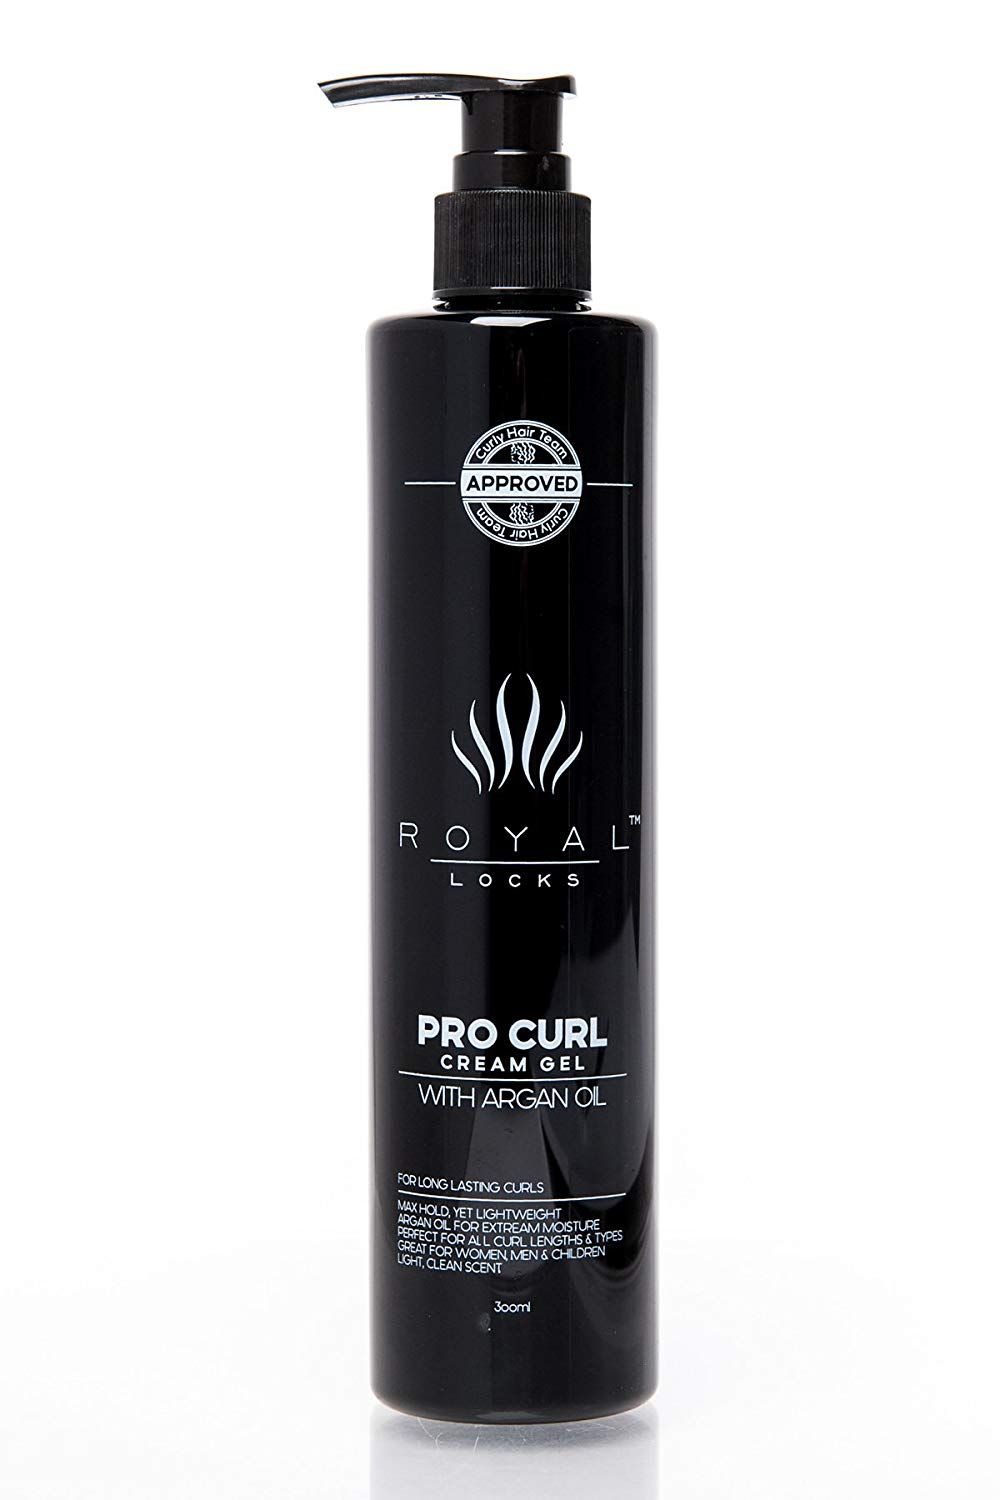 hair gel, hair products for curly hairstyles for men